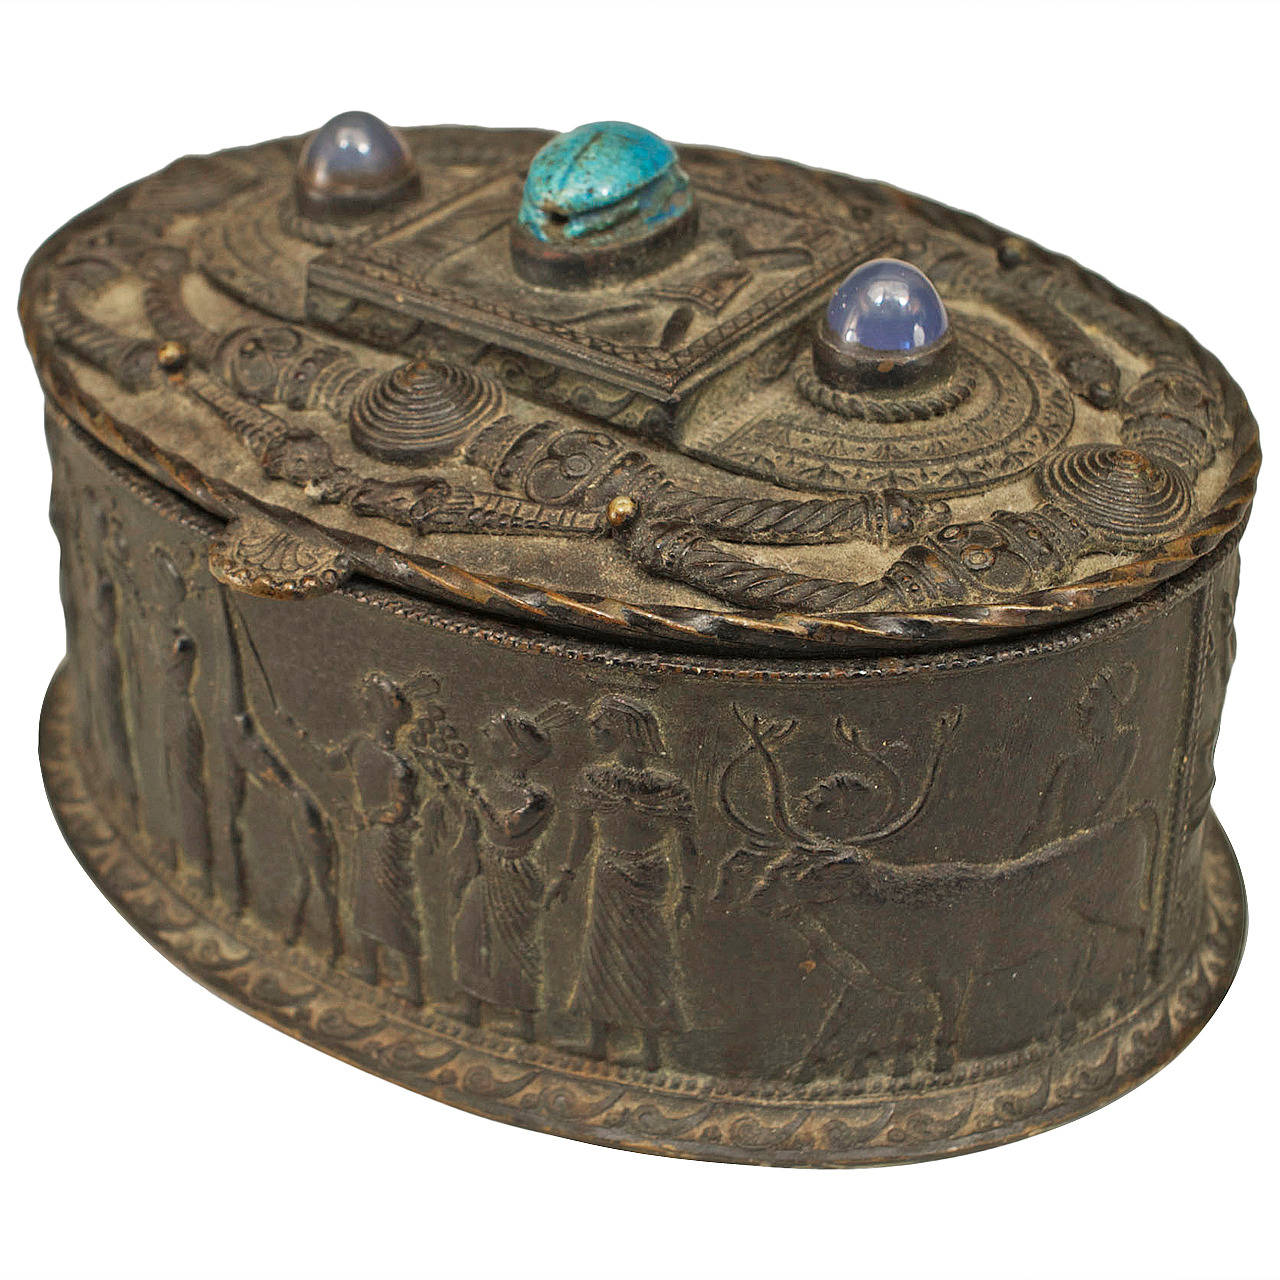 Egyptian Revival Inlaid Bronze Oval Box, circa Late 19th Century For Sale